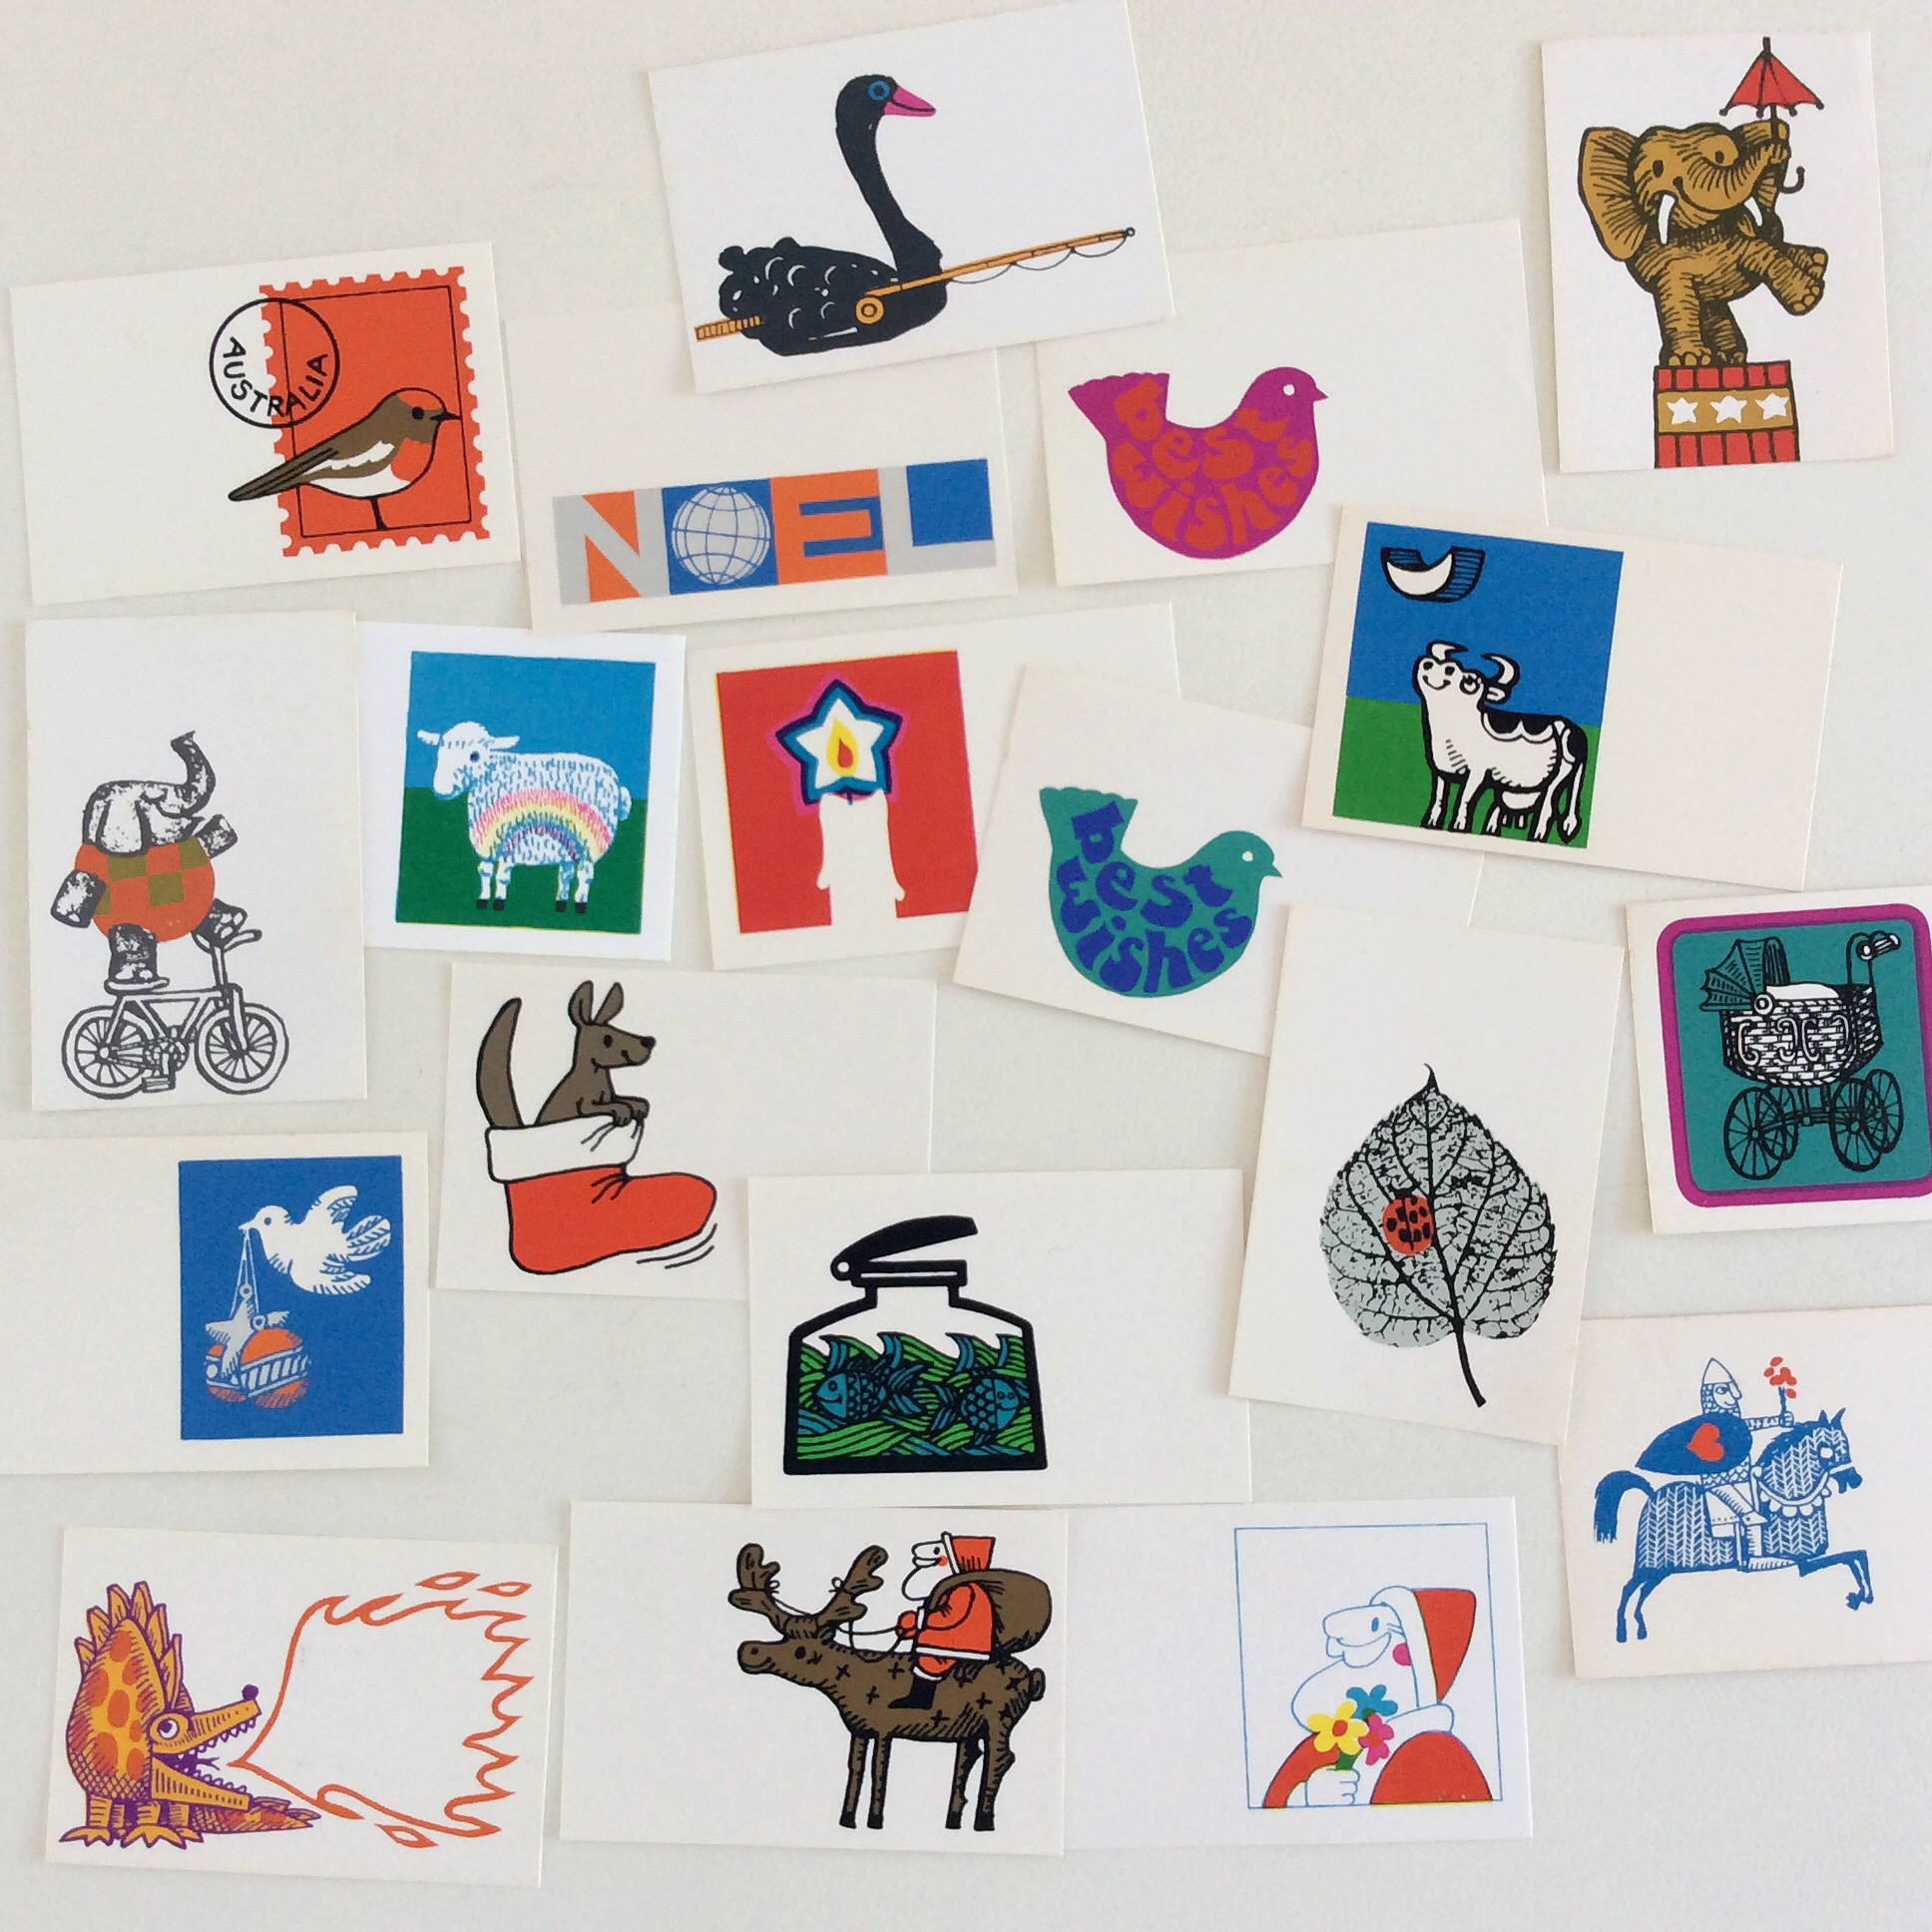 A selection of Dajer cards produced by David and Jenny Rose in the 1960s